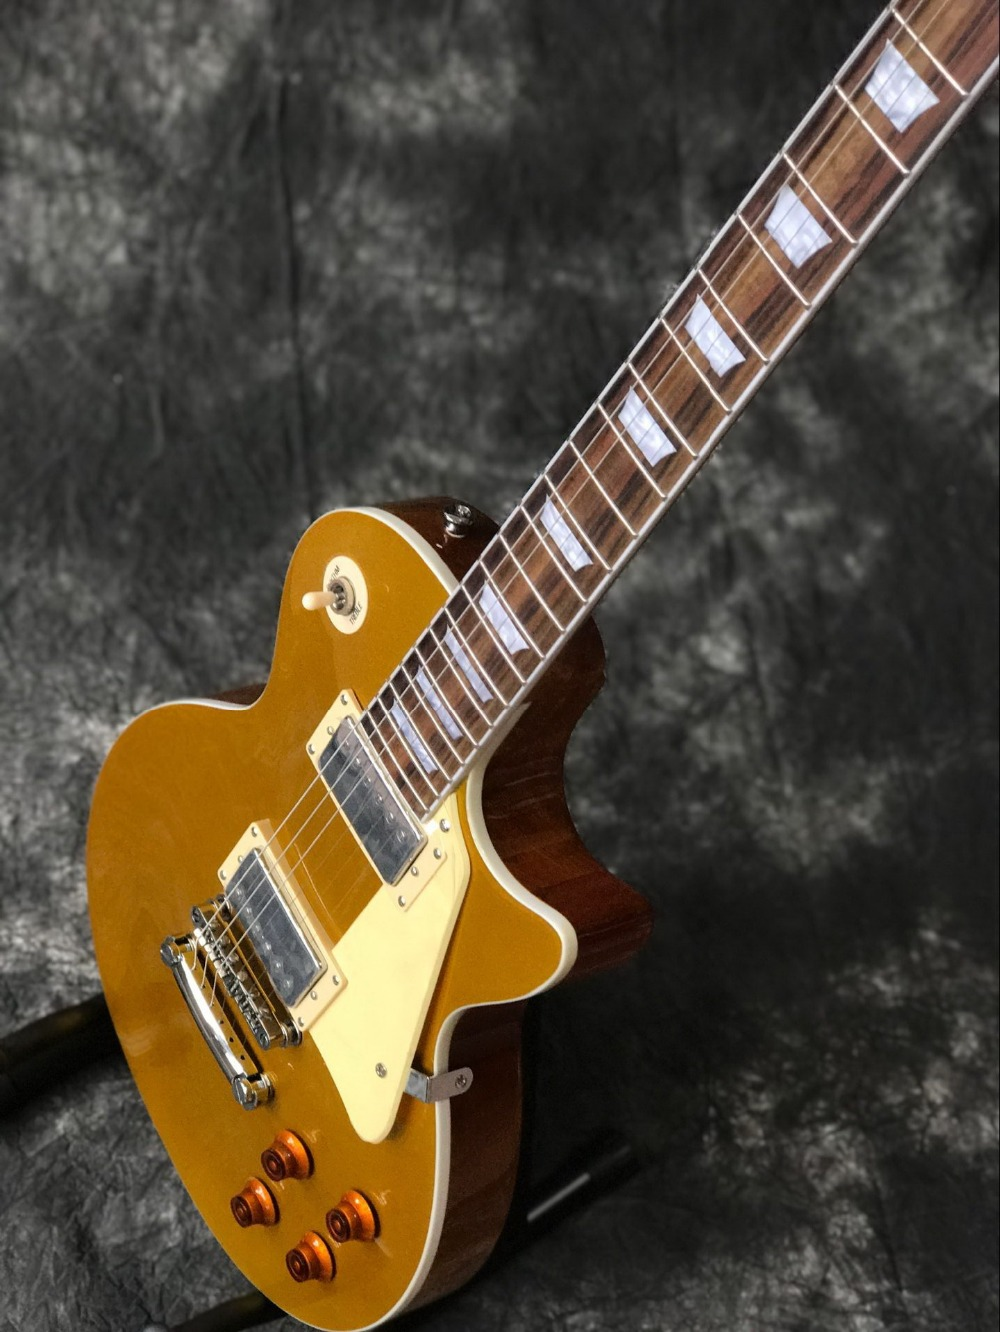 Classic Custom gold top with Chrome hardware LP standard custom electric guitar Standard Chibson guitarra.musical instruments.199 (3)